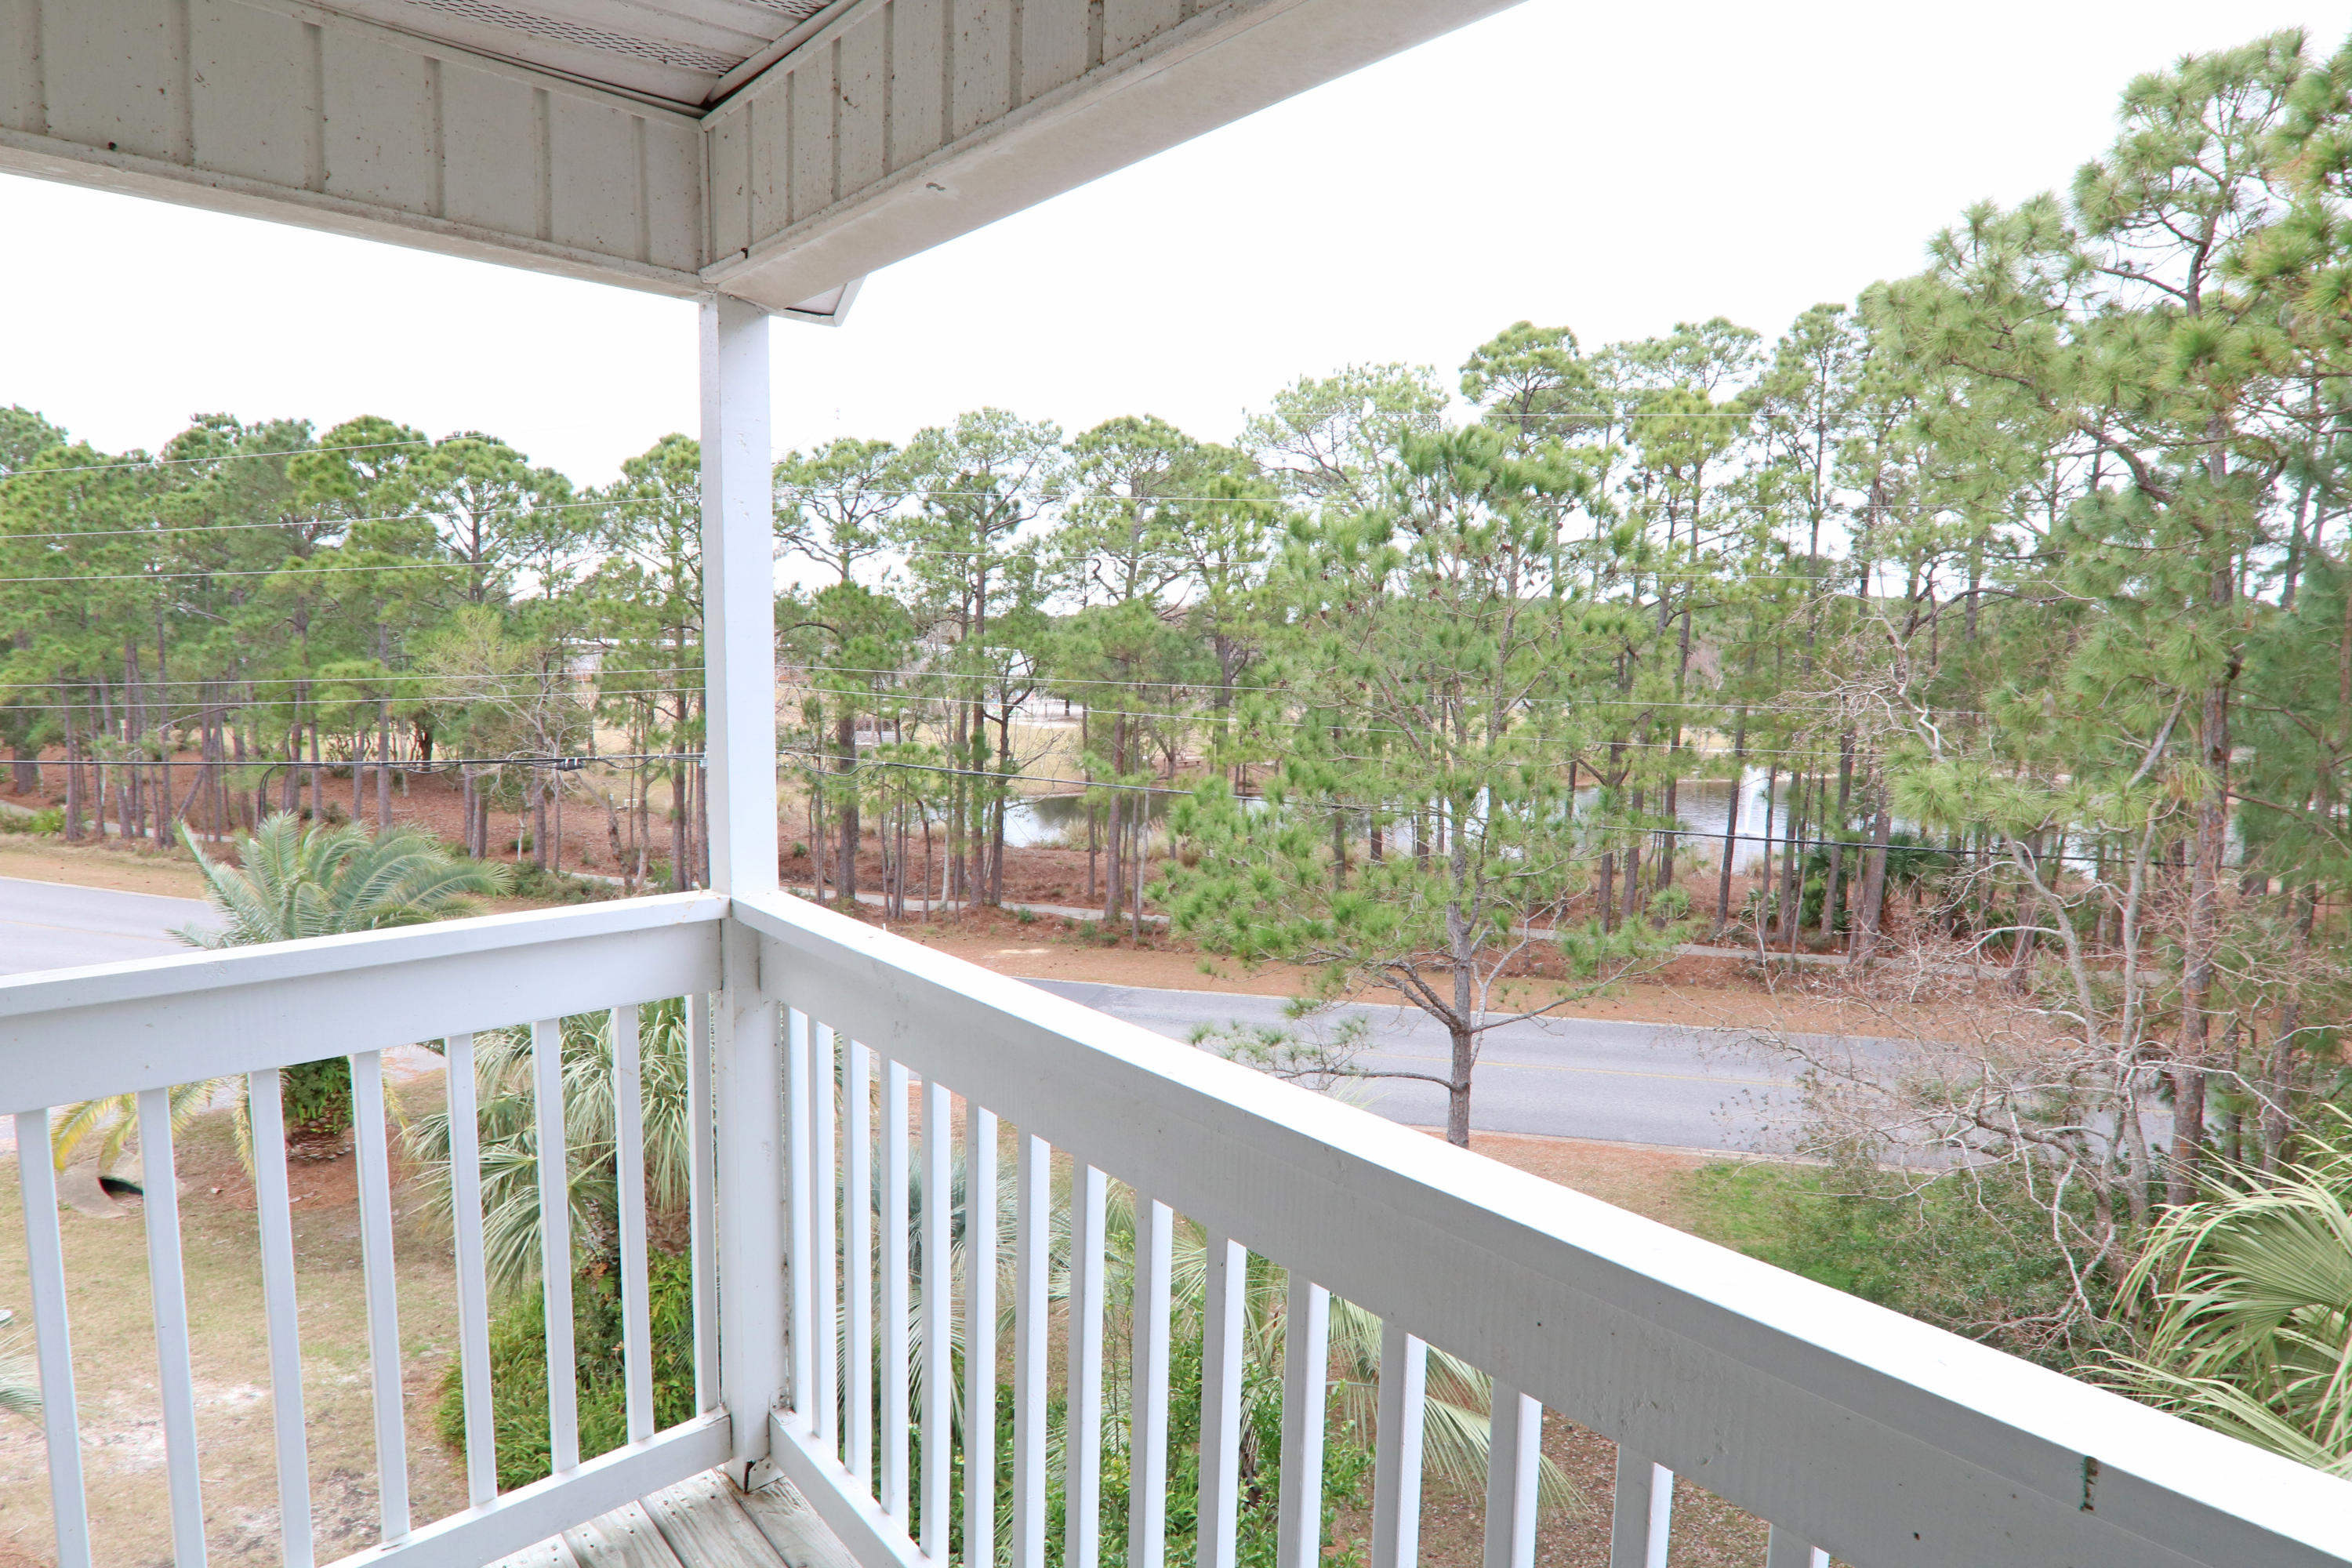 Great opportunity to own a private 3rd floor corner unit with lake views.  This 2 bedroom 2 bath corner unit is conveniently located near beaches, golf course, dog park, shopping and dinning.  The interior offers a tiled floors in kitchen, dining room and living area while large master bedroom and spacious guest room has soft plush carpet.  The balcony is located off the living area and offers lots of privacy and peaceful views of the lake and surrounding area landscaping. Indian Lake features on-site rental management, workout facility, clubhouse, and pool.